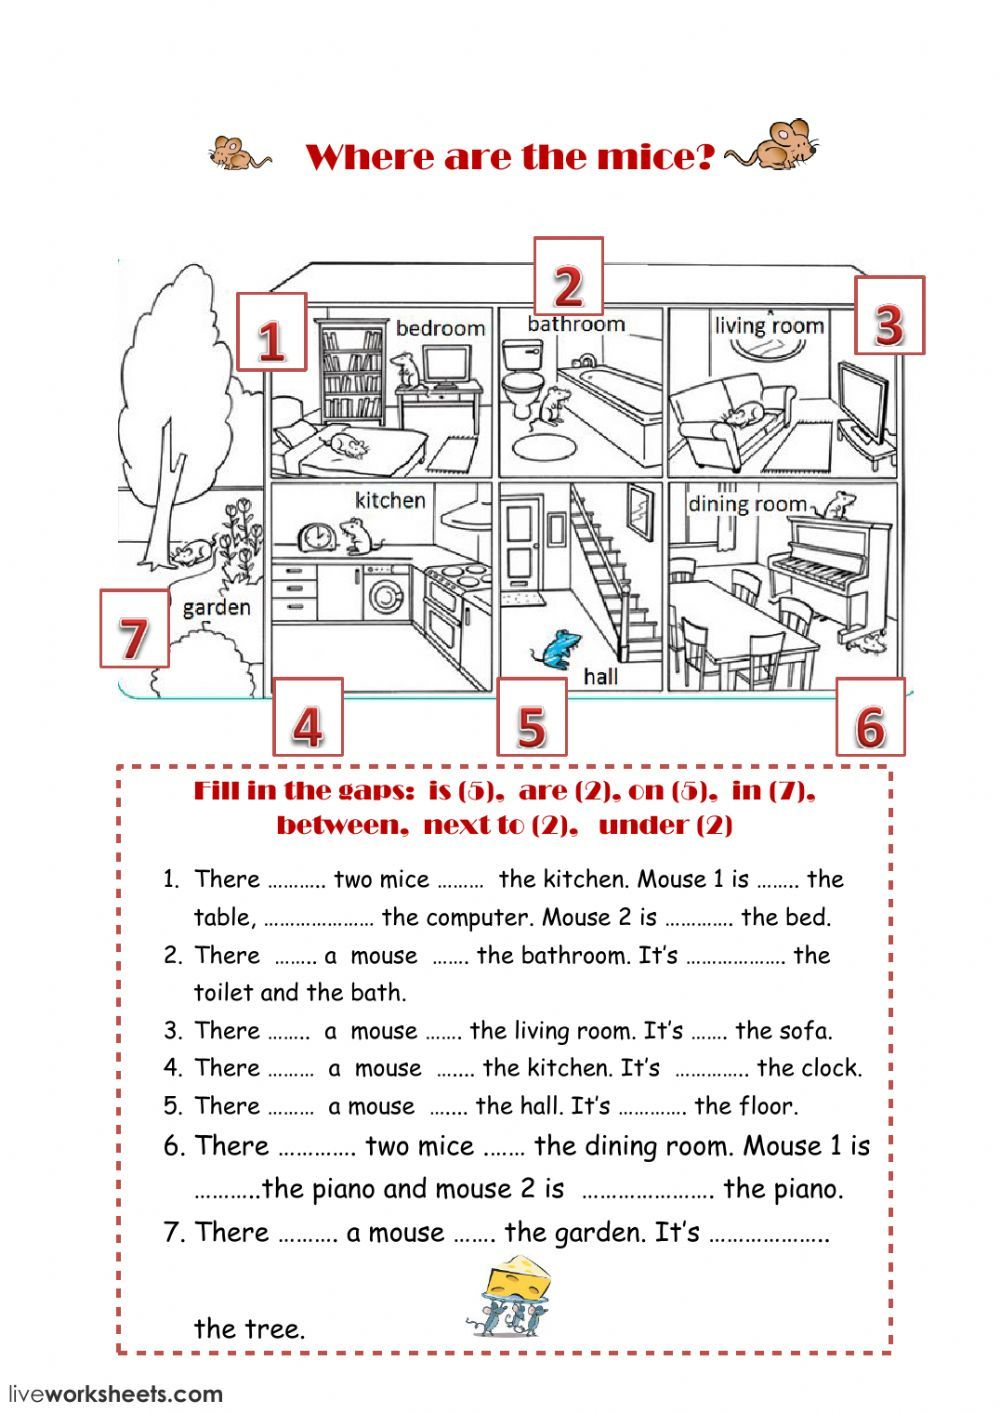 Prepositions Of Place Interactive And Downloadable Worksheet You Can Do The Exercises O Preposition Activities English Grammar For Kids Preposition Worksheets